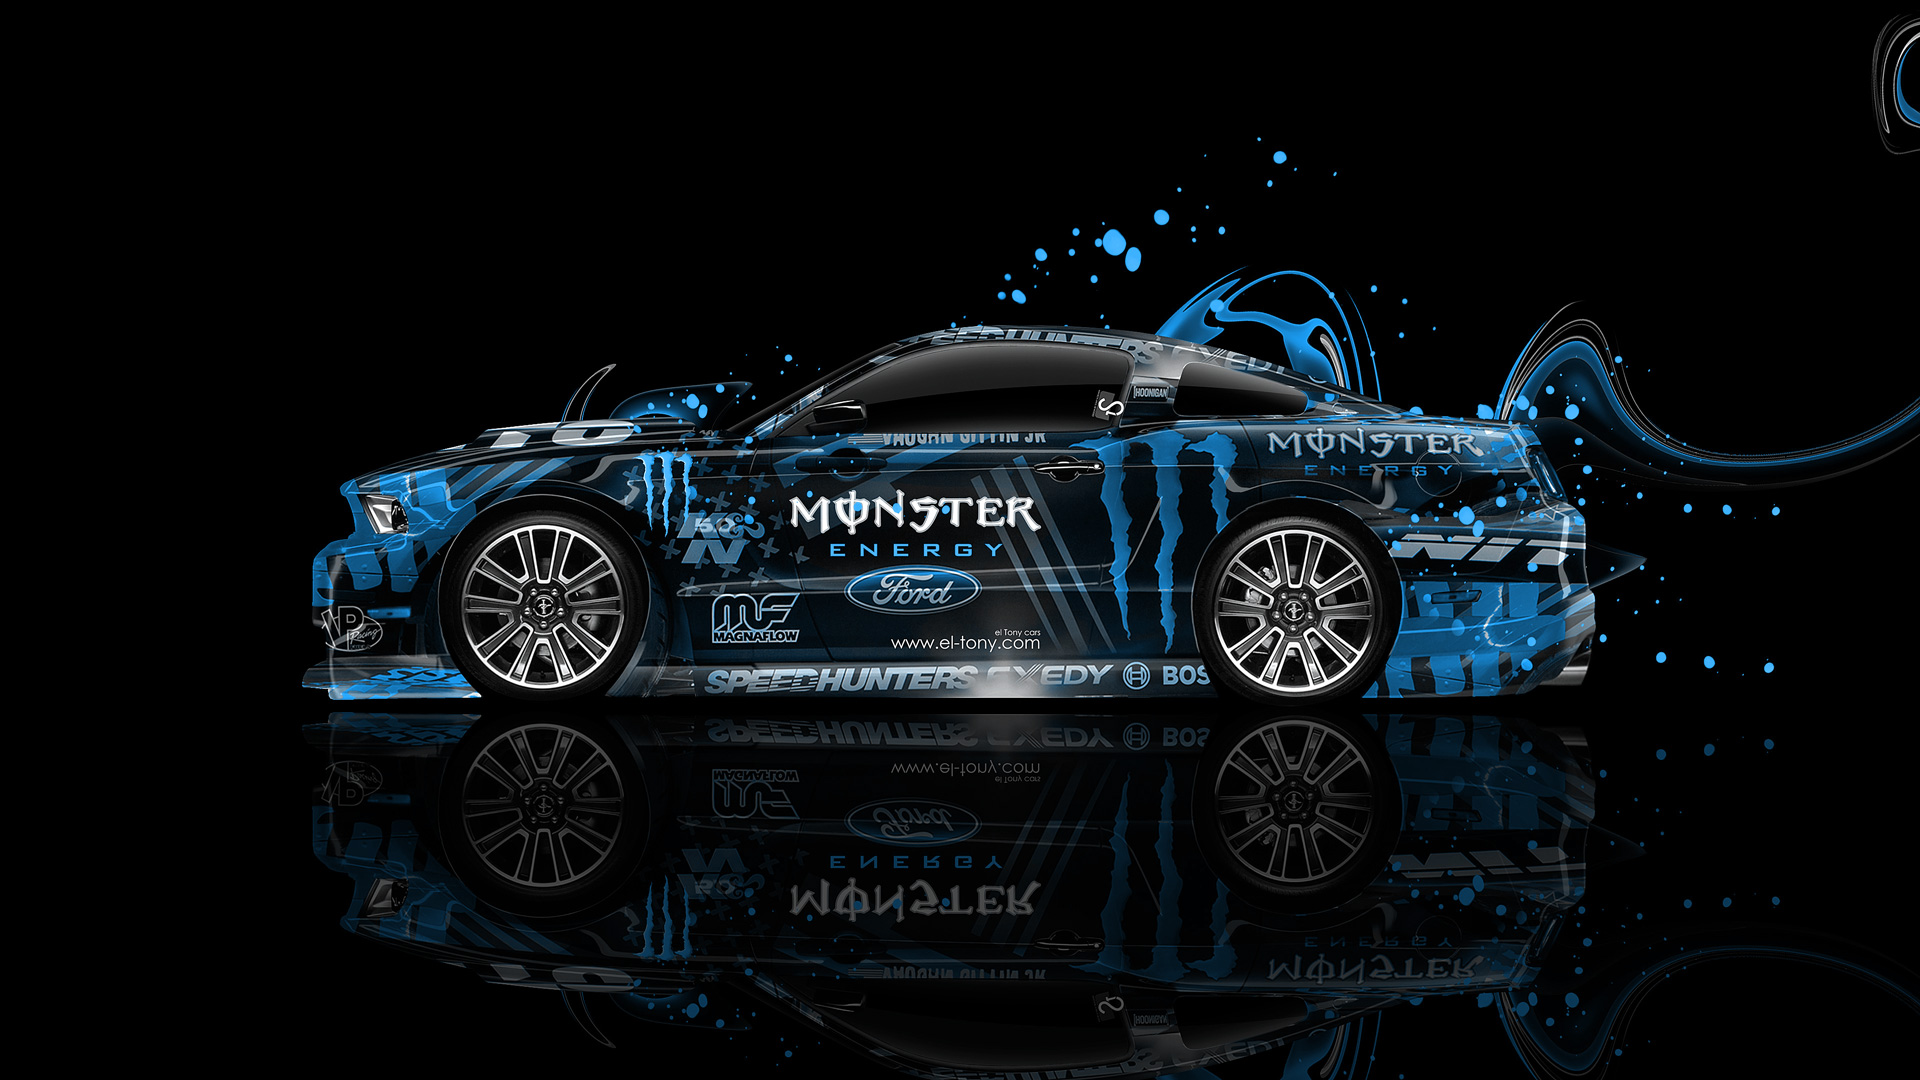 Monster Energy Ford Mustang Gt Side Plastic Car 2014 El Tony